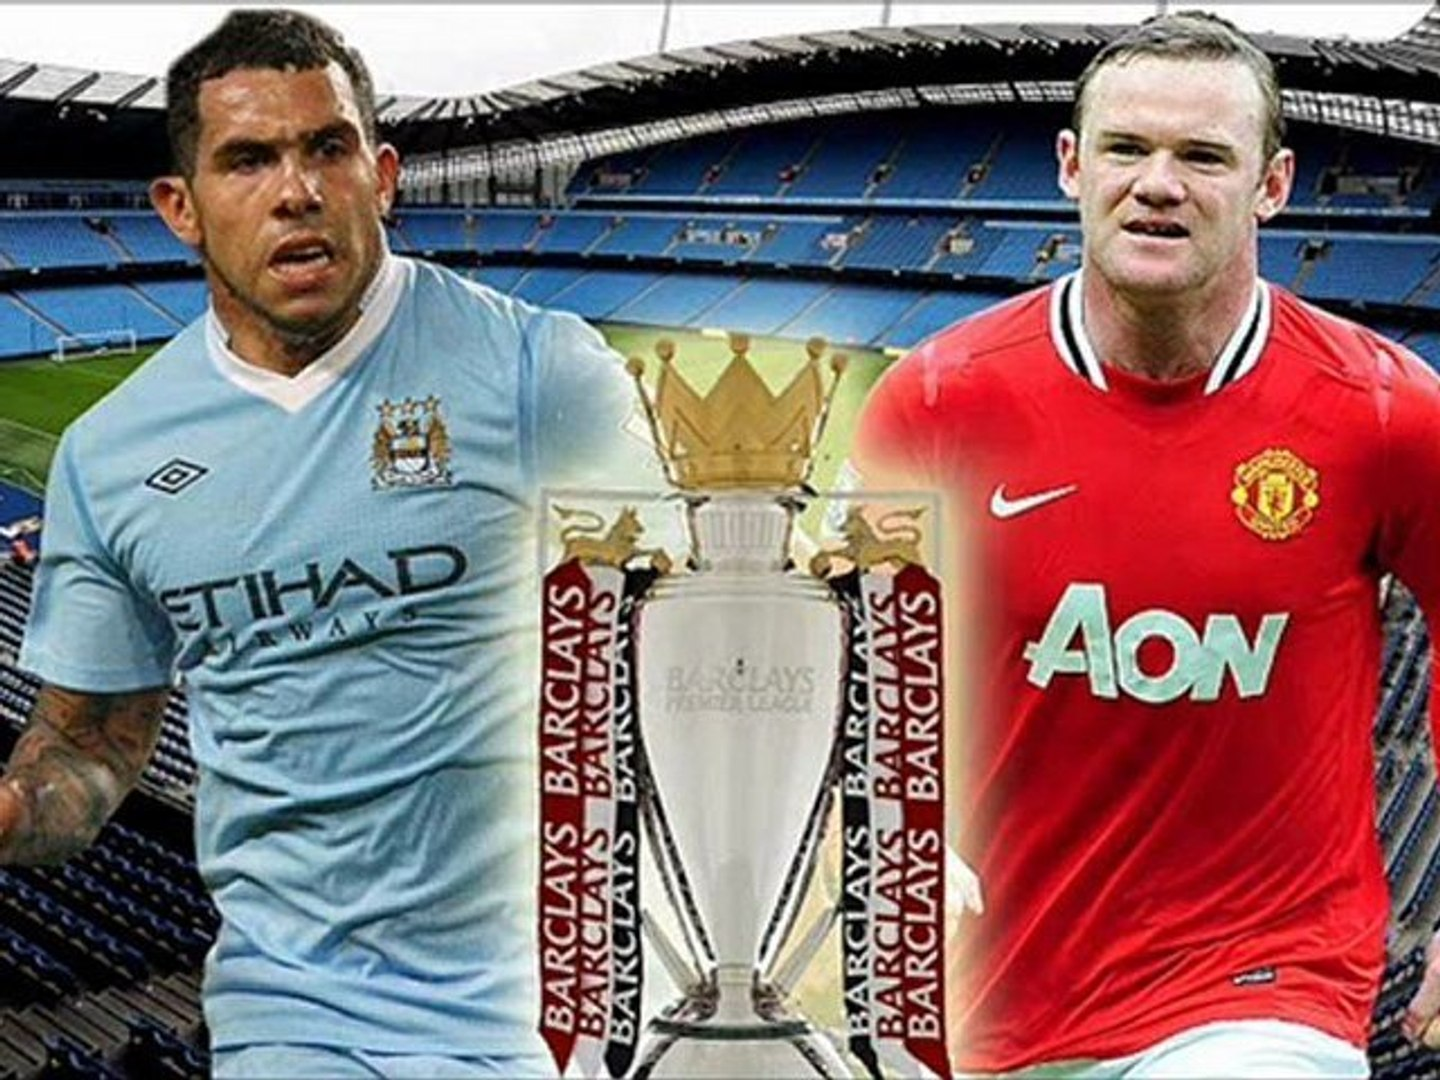 Manchester City vs Manchester United Live Streaming Online 30-04-2012